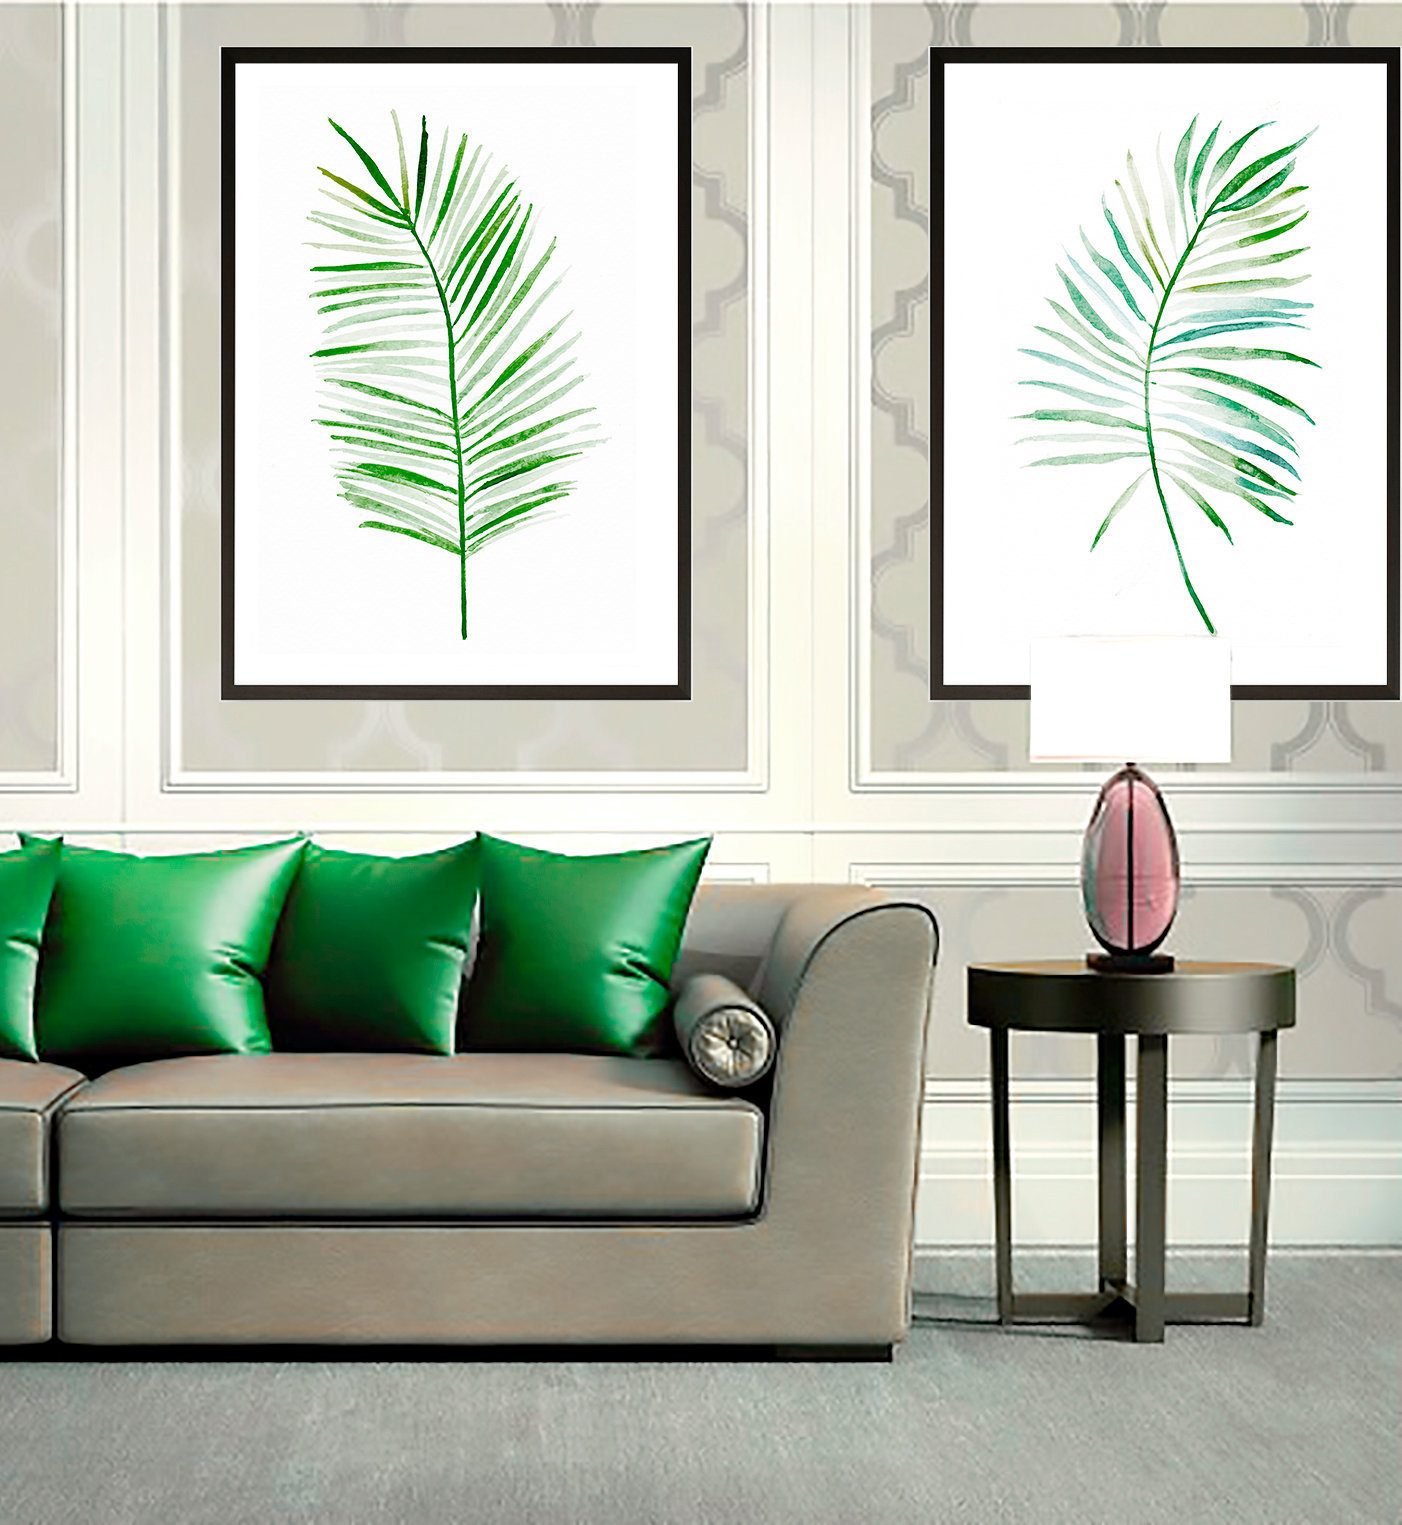 Set of 2 Leaves Prints, Set of 2 Prints, Set of 2 Wall Art, Set of 2 Tropical, Set of 2 Tropical Prints, Watercolor Leaves, Tropical Decor